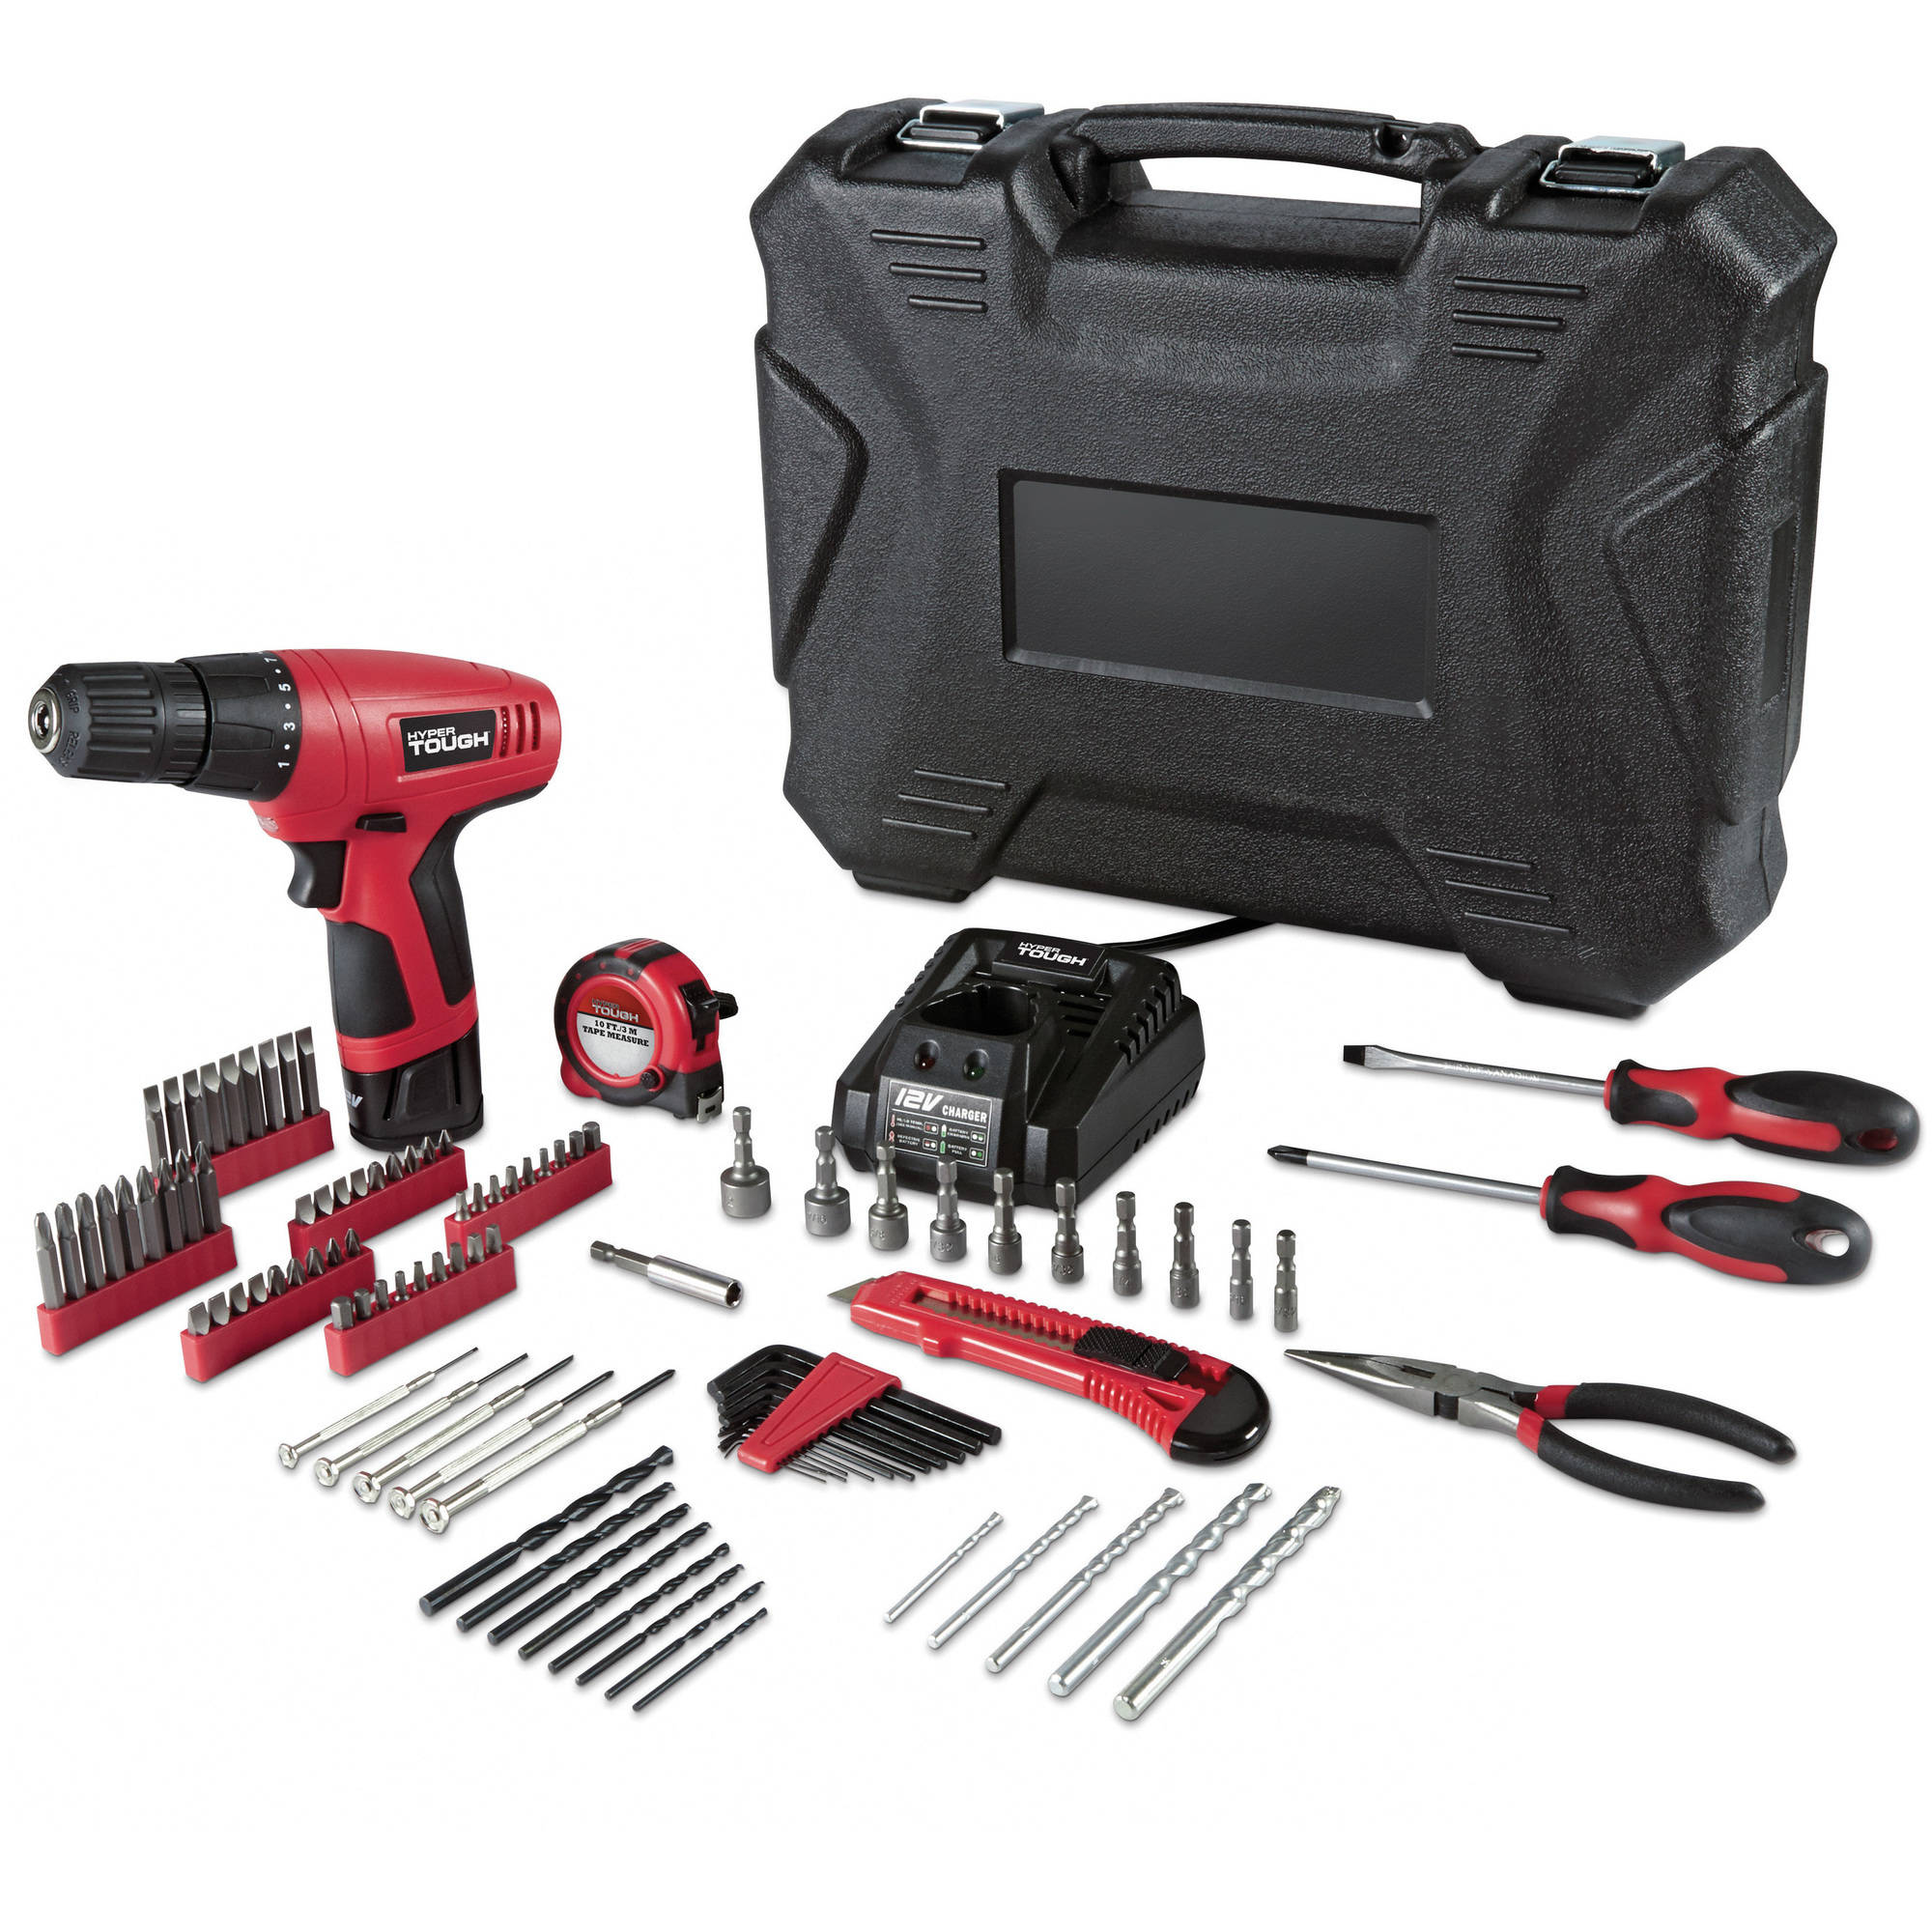 Hyper Tough 5241.41 12-Volt Cordless Lithium Ion Drill with 100-Piece Project Kit